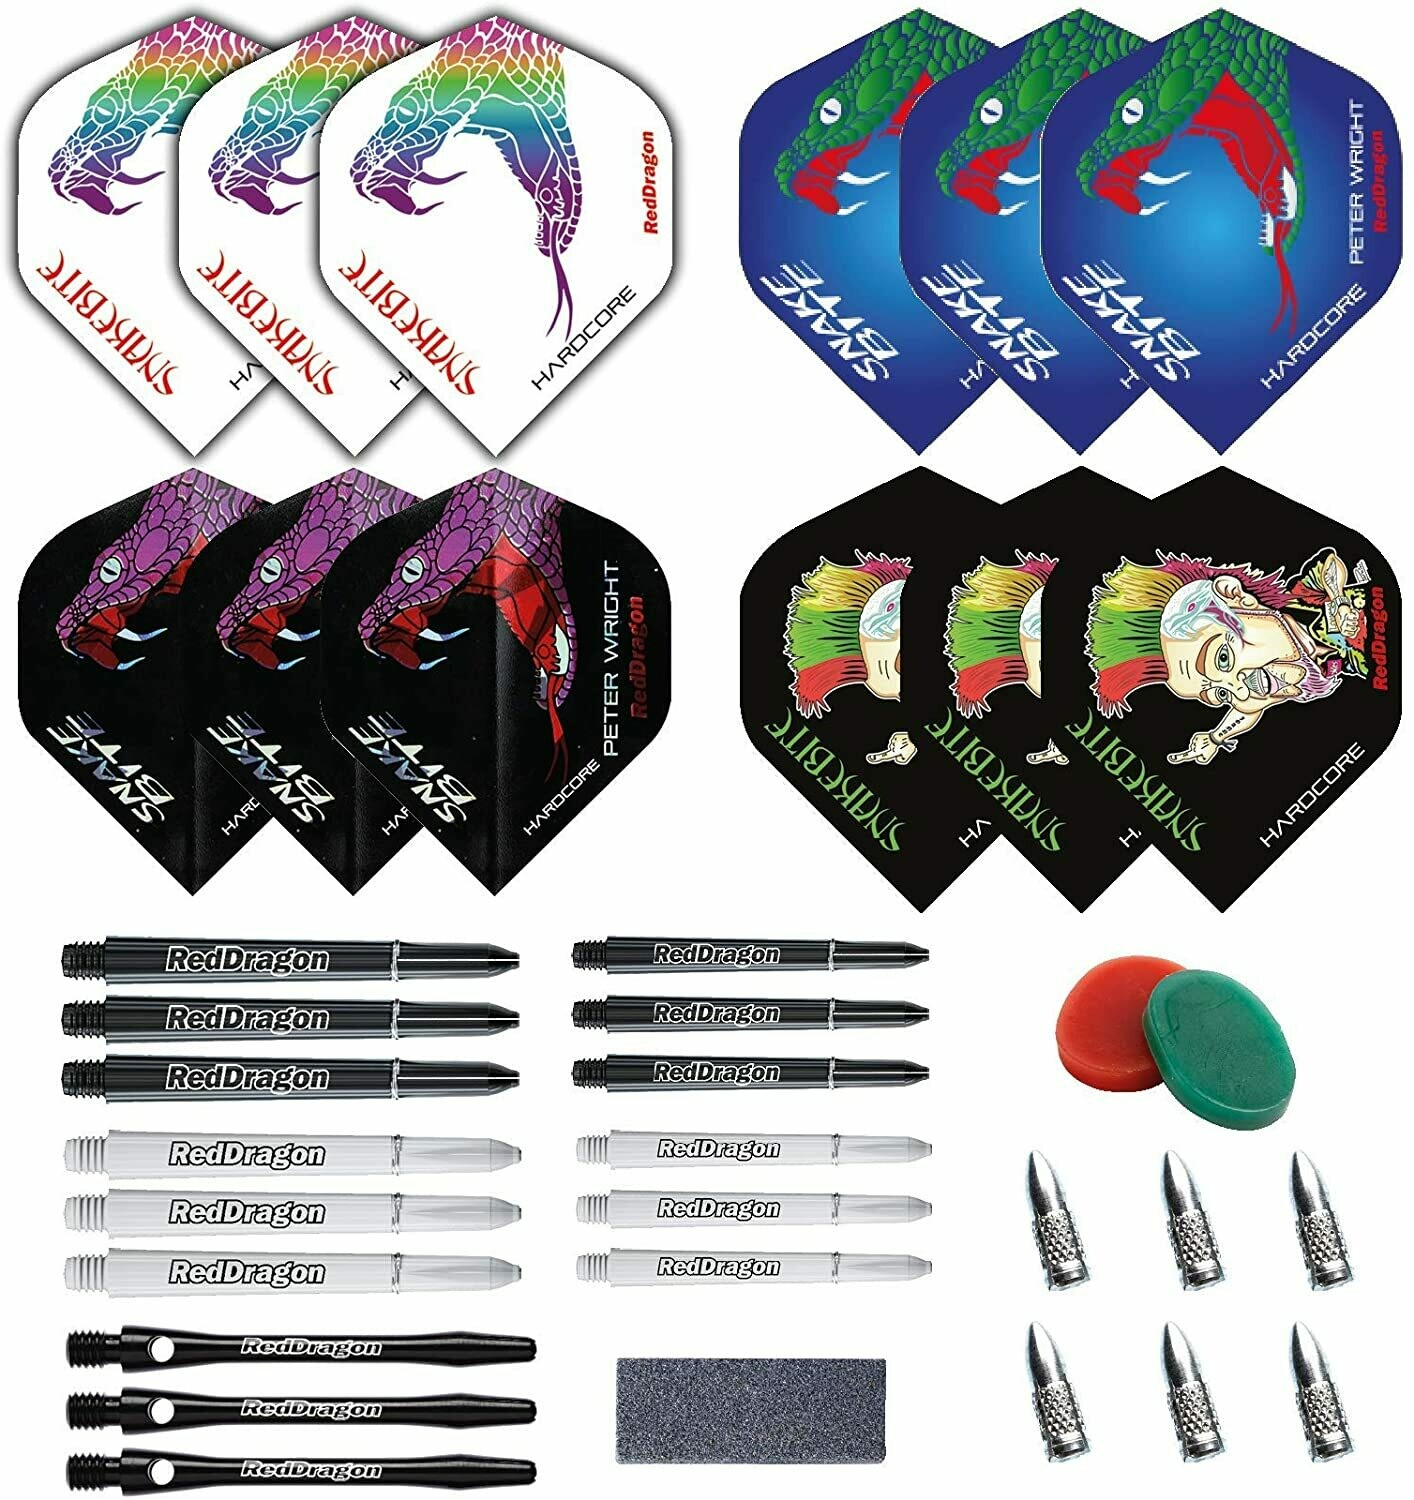 Peter Wright Snakebite Darts Accessory Pack